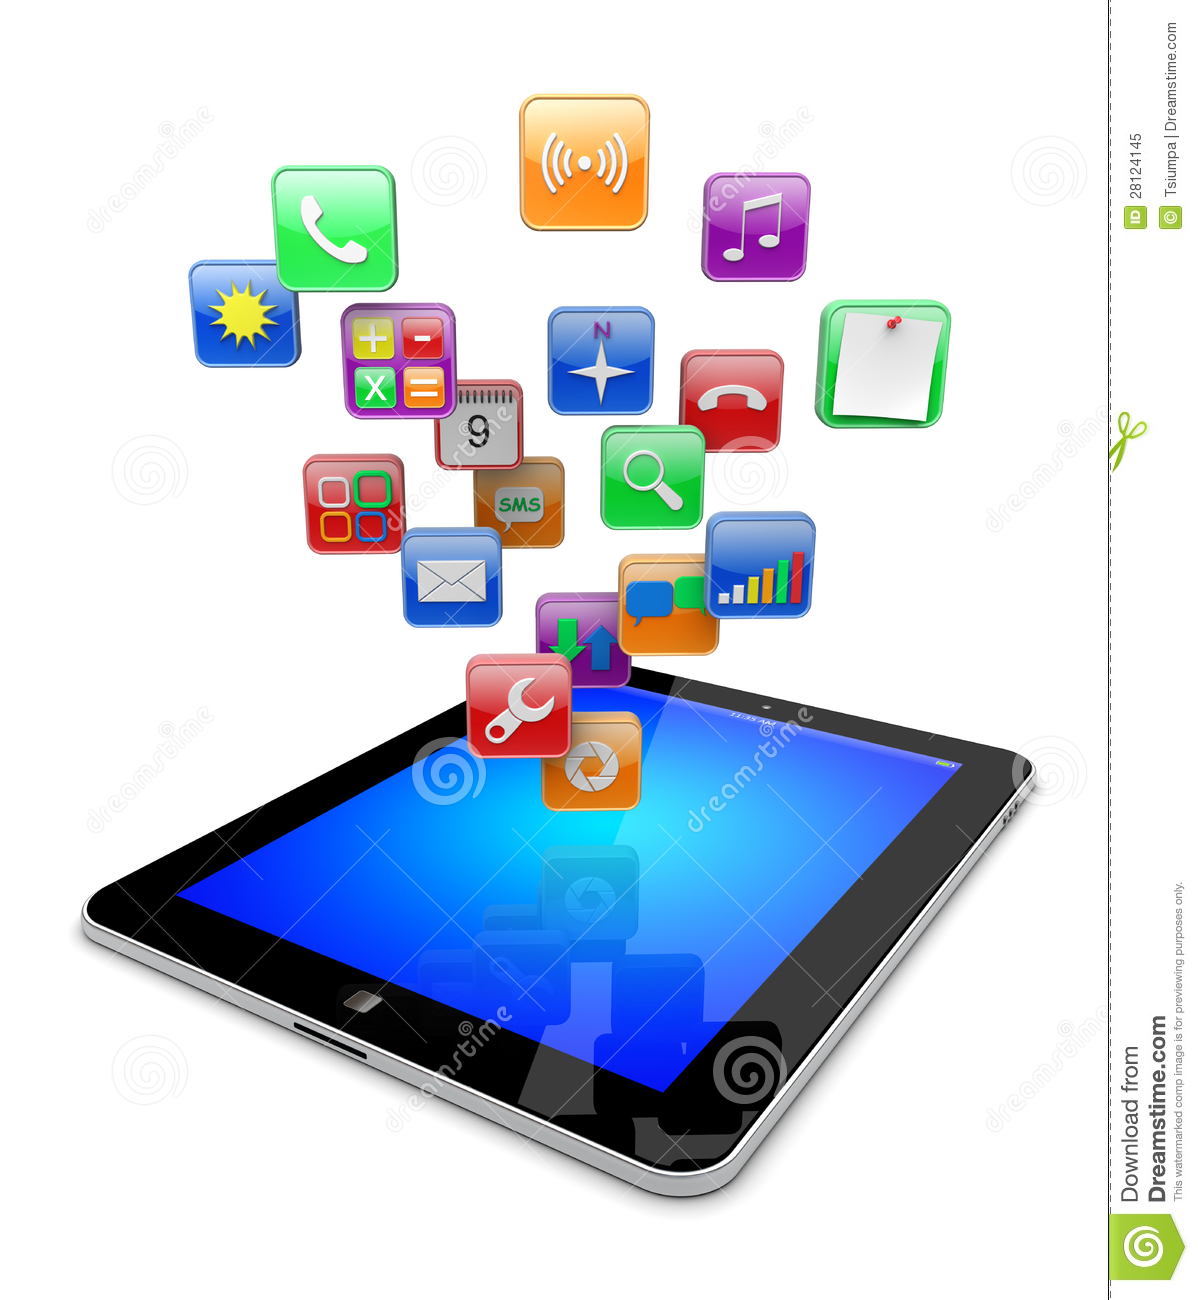 Tablet Pc Apps Icons Royalty Free Stock Photo - Image: 28124145